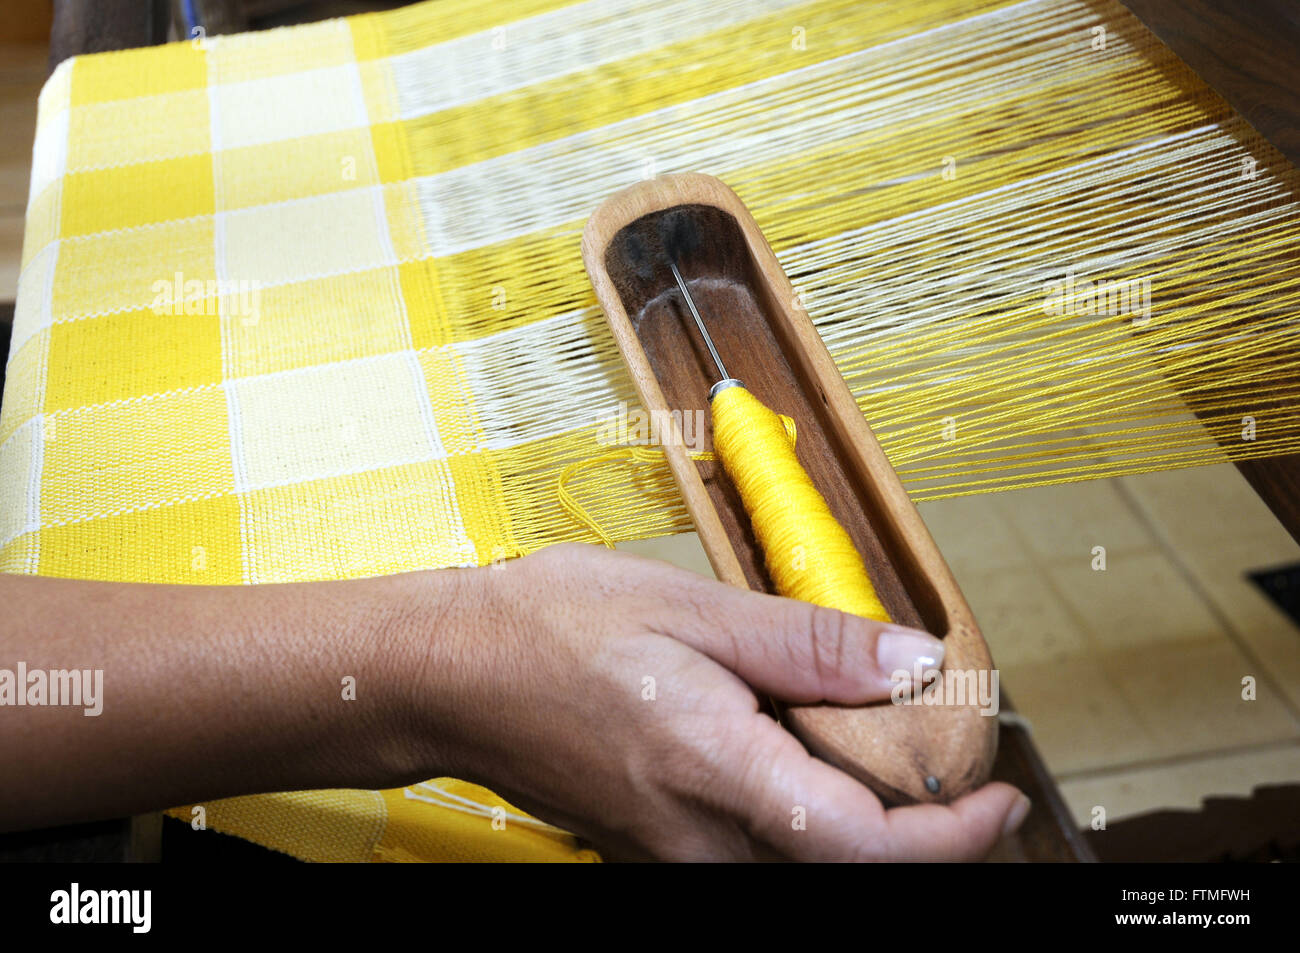 Fundacao Cultural Calmon Barreto keeps core to preserve the artisanal production of - Stock Image